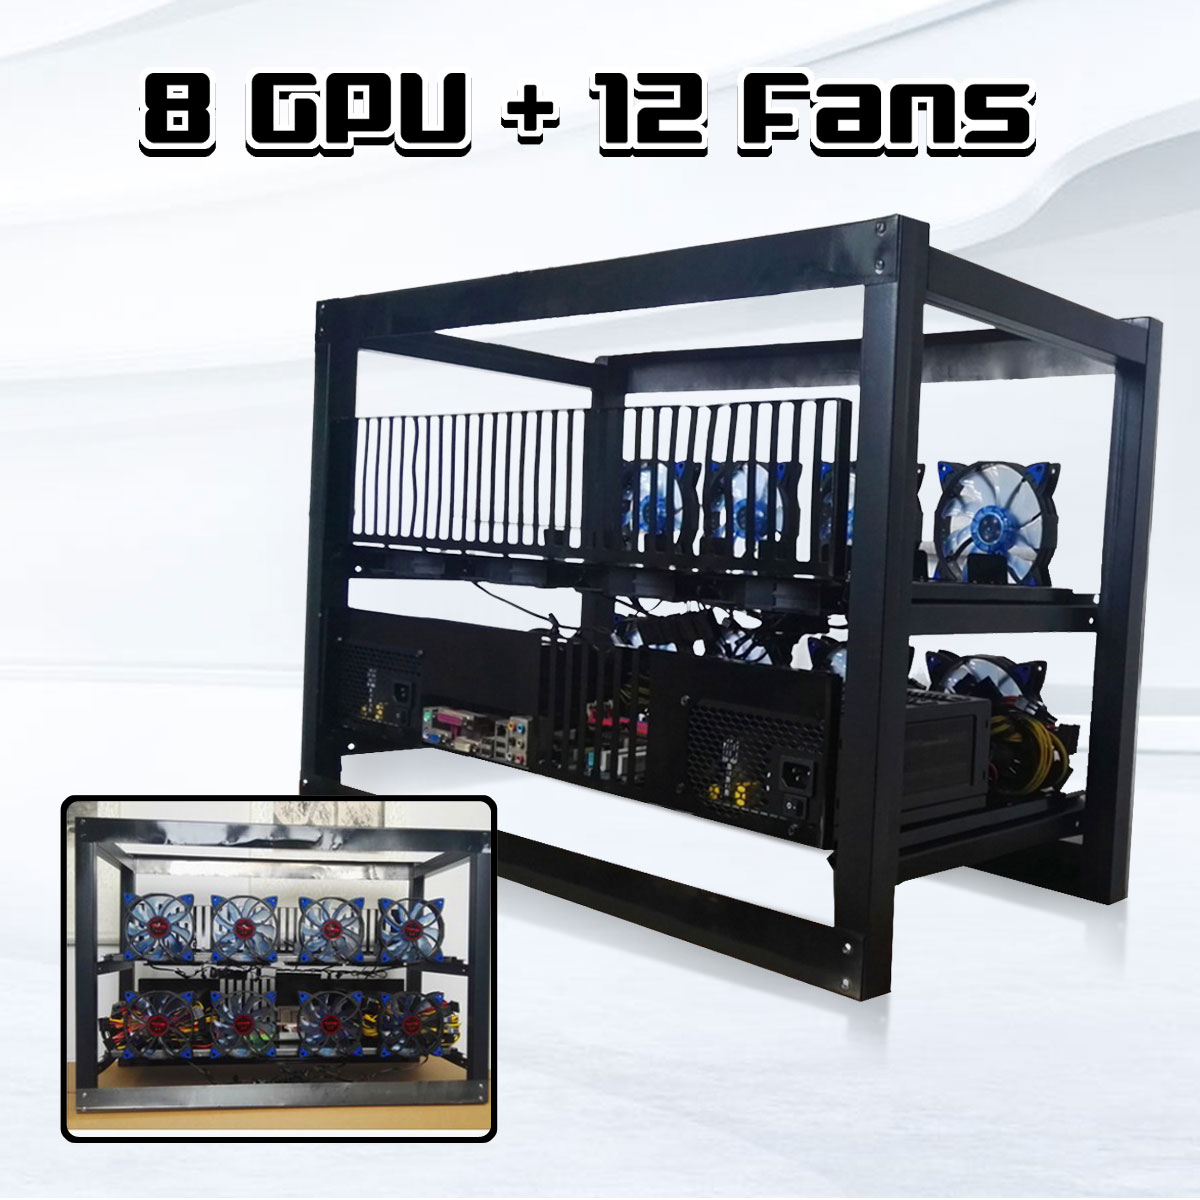 8 GPU Crypto Coin Open Air Aluminum Frame Case Mining Miner Frame Rig Stackable Case With 12 Fan Outdoor Frame ETH/ZEC/BTH